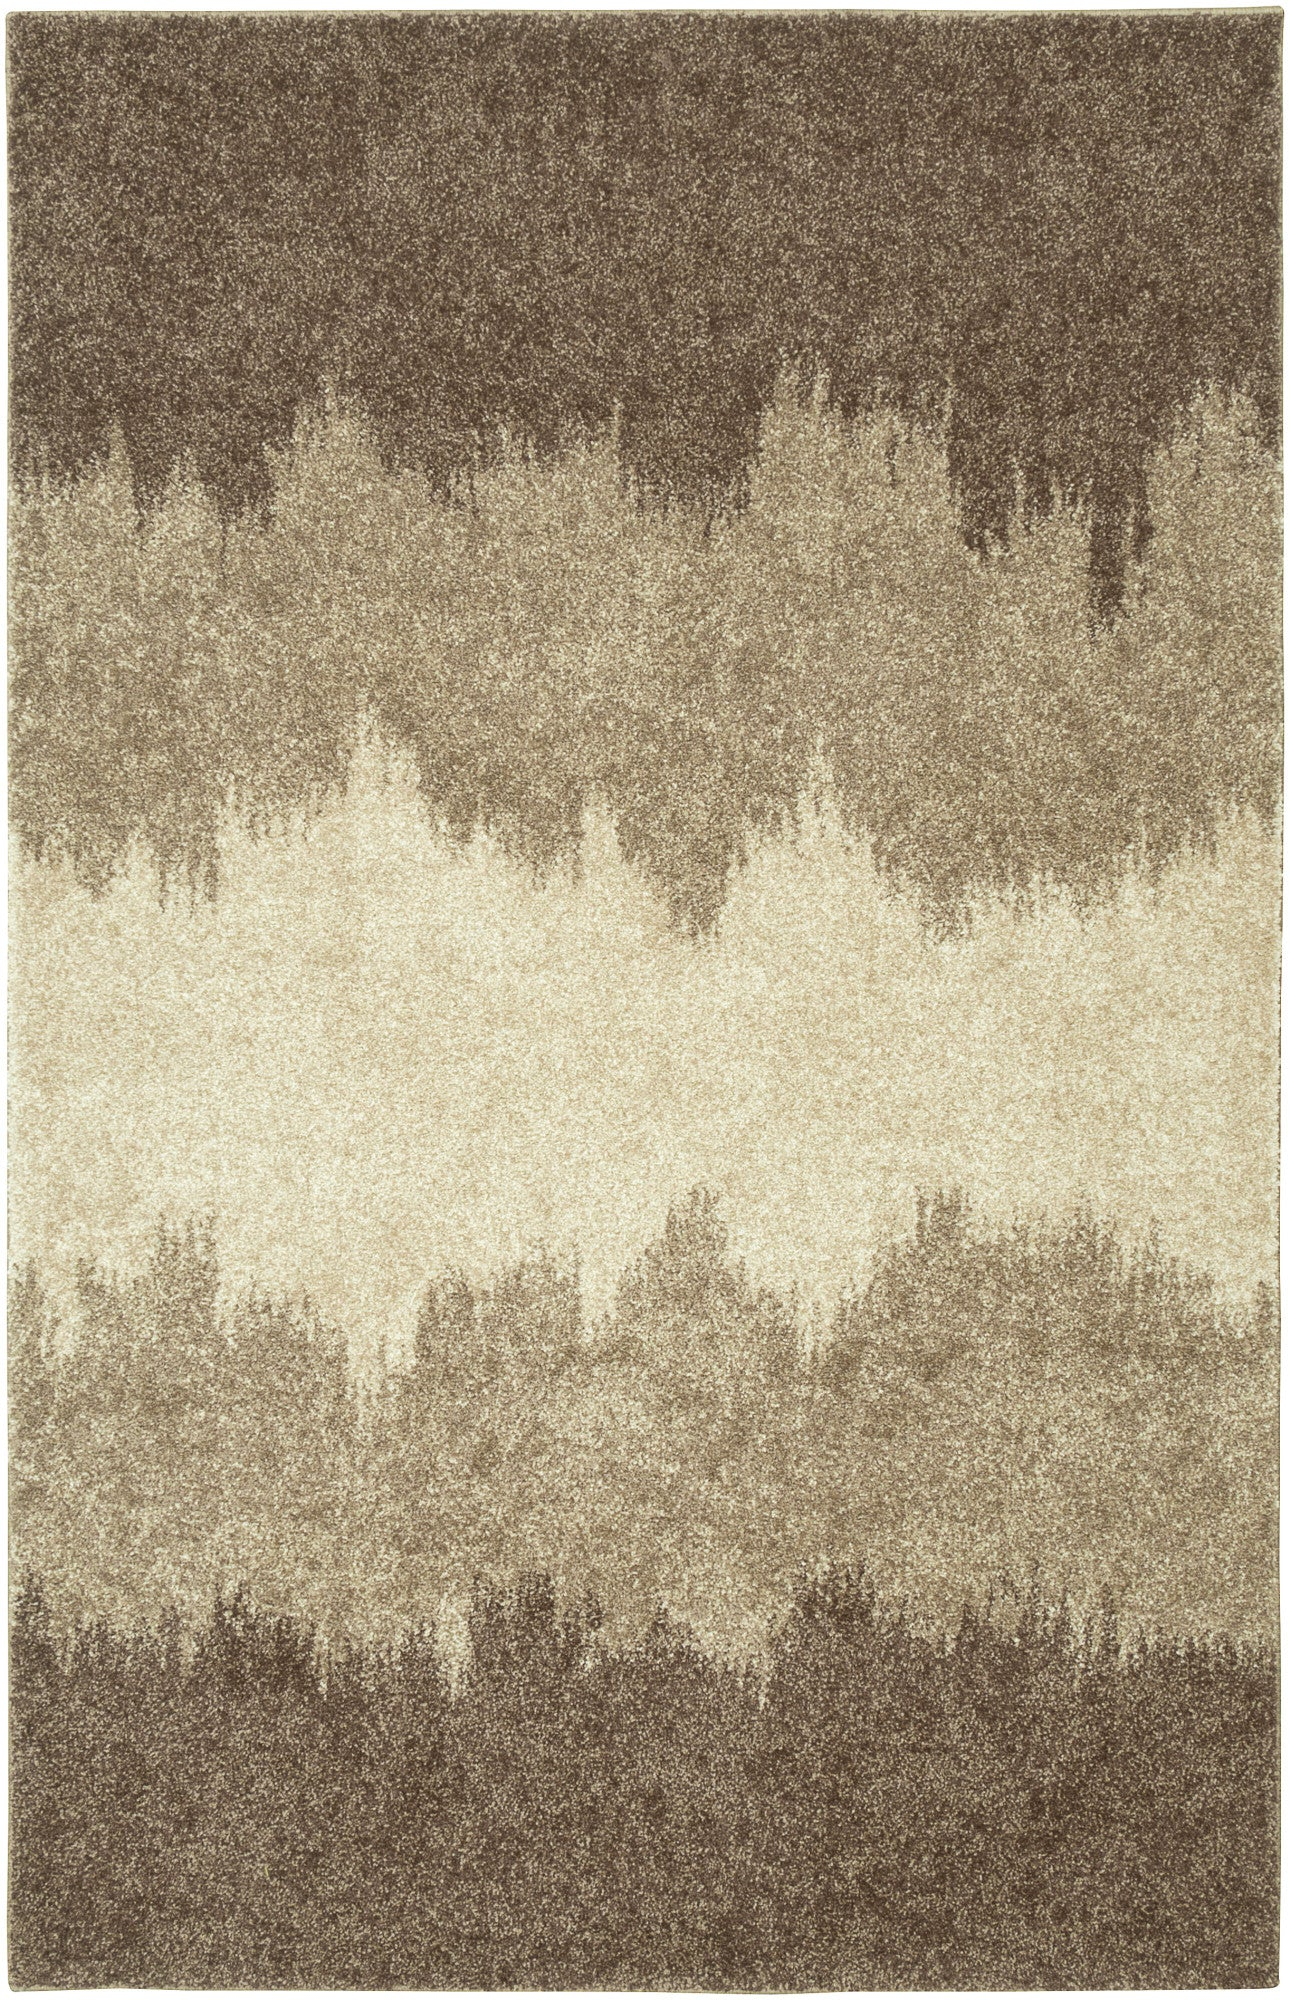 LR Resources Rock 80922 Brown Area Rug